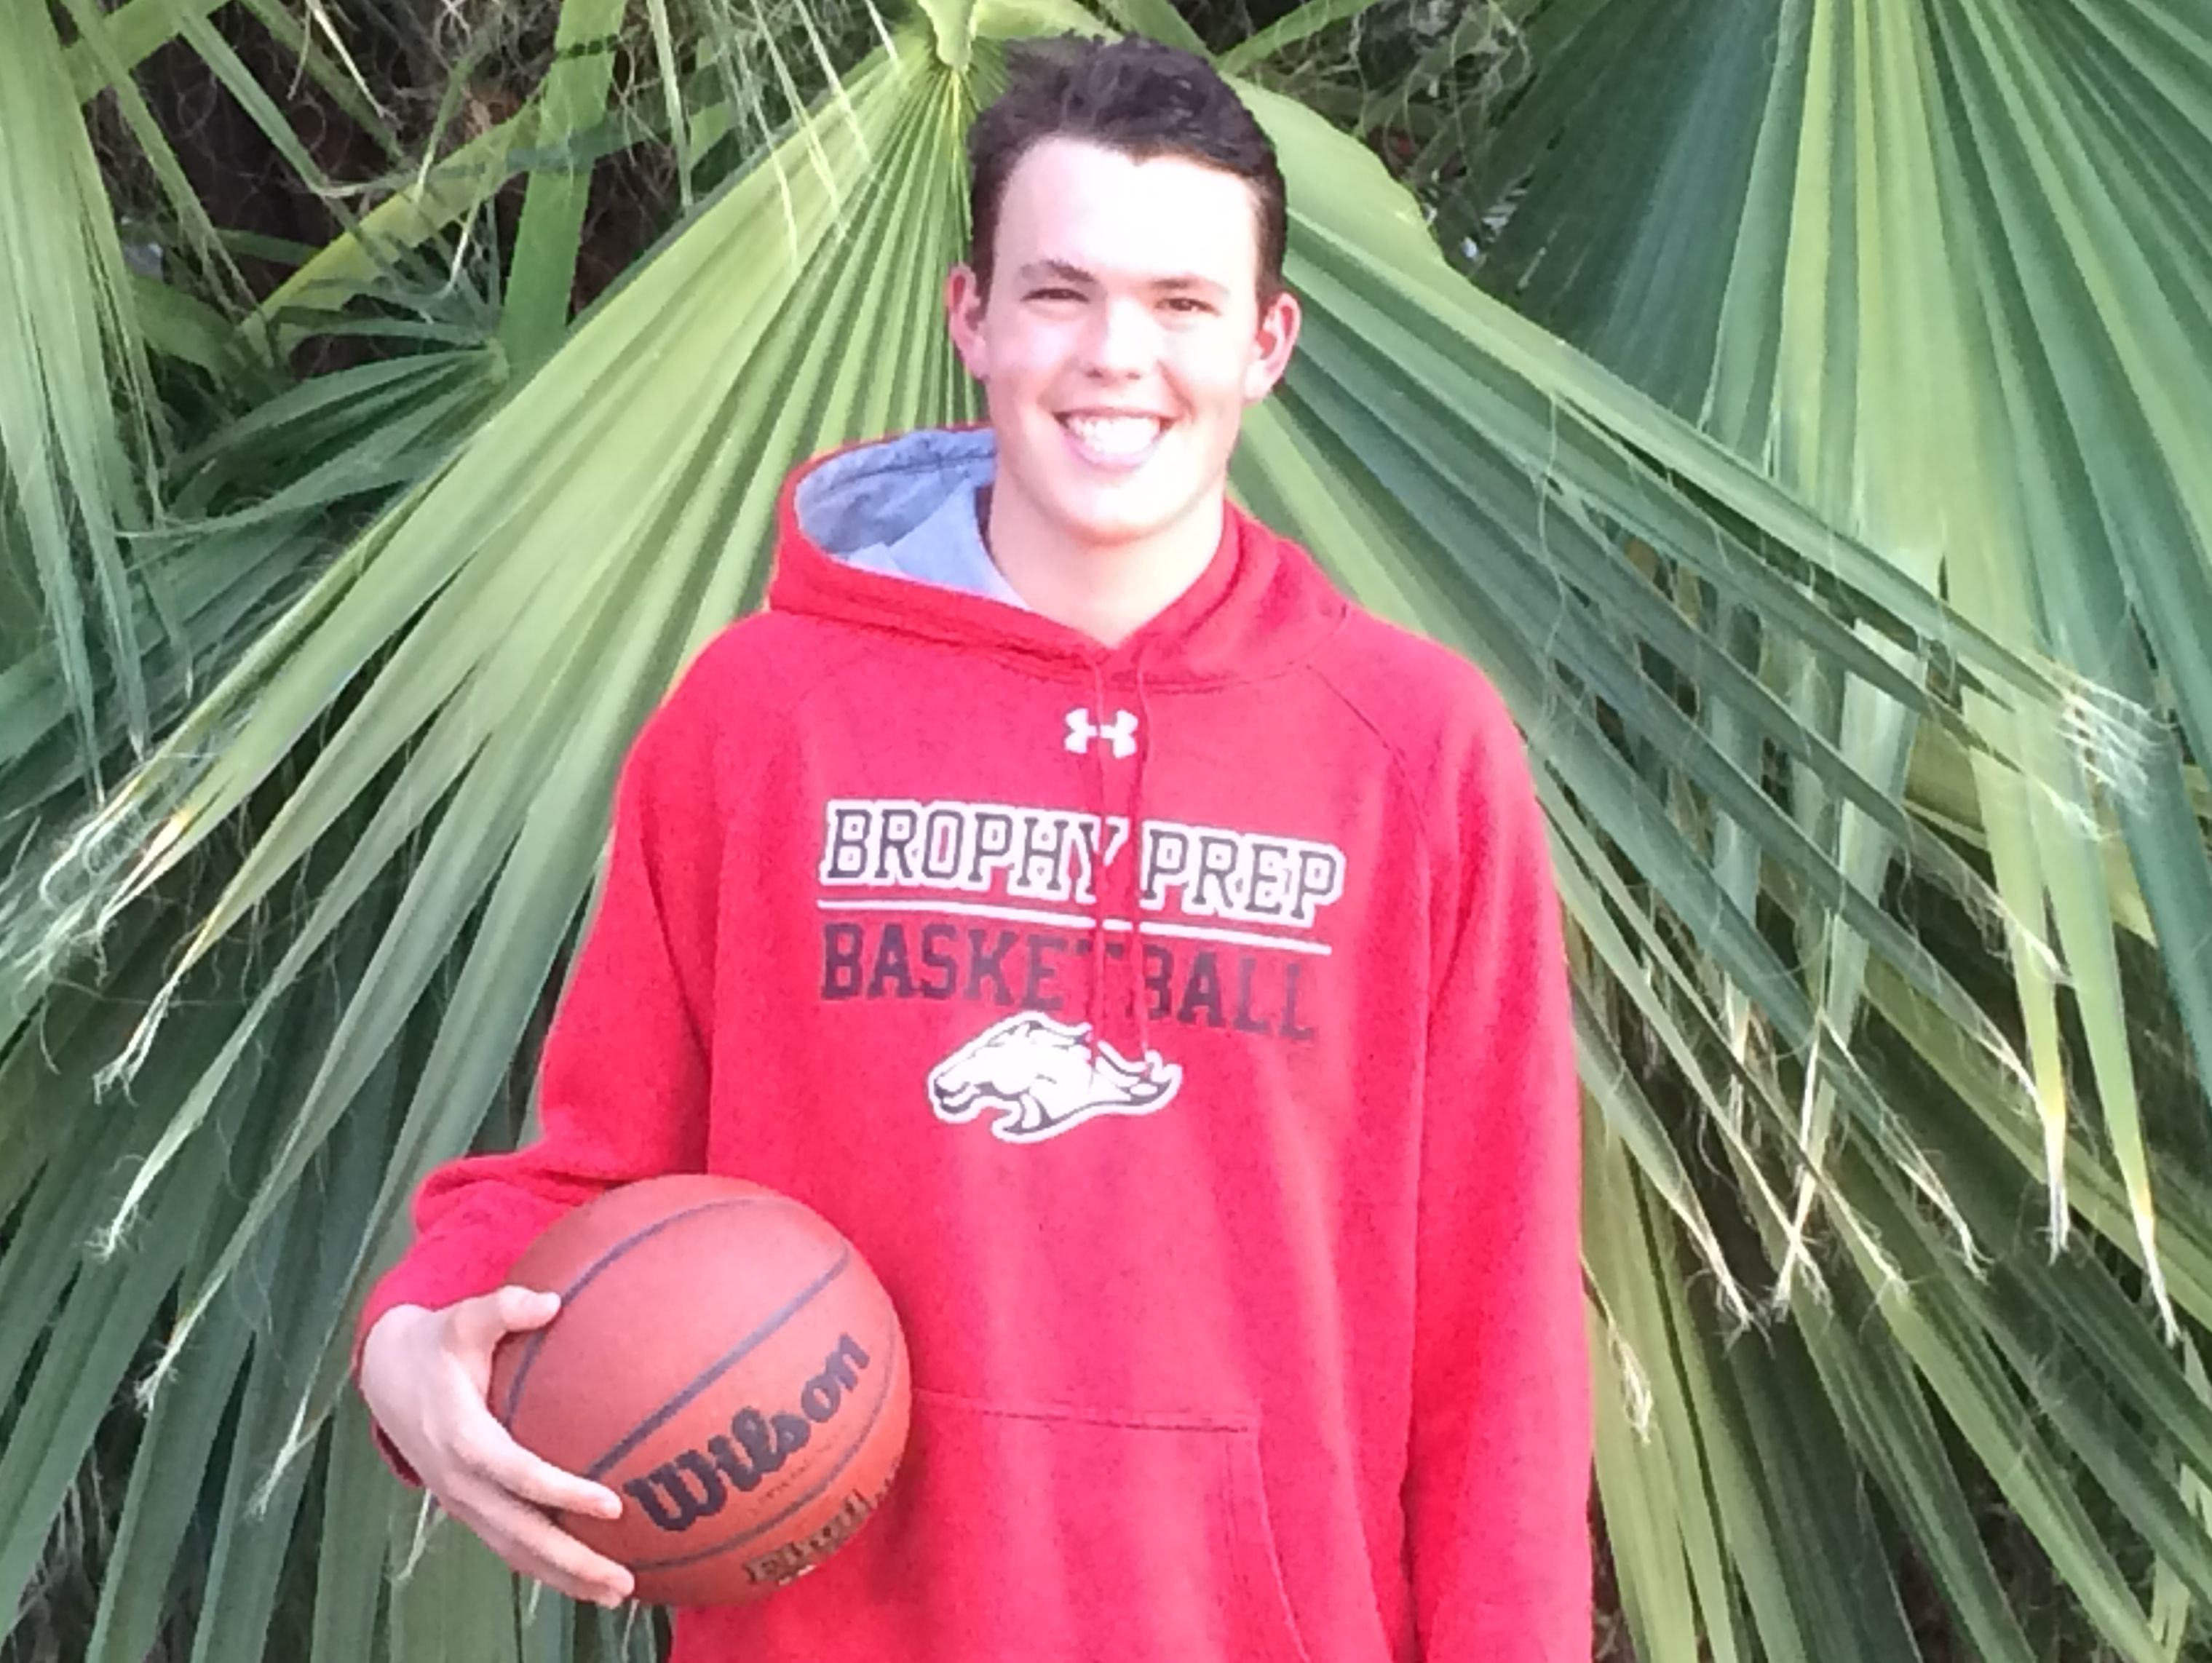 Sean Even, from Brophy College Prep, is azcentral sports' High Achiever of the Week for Dec. 3-10.